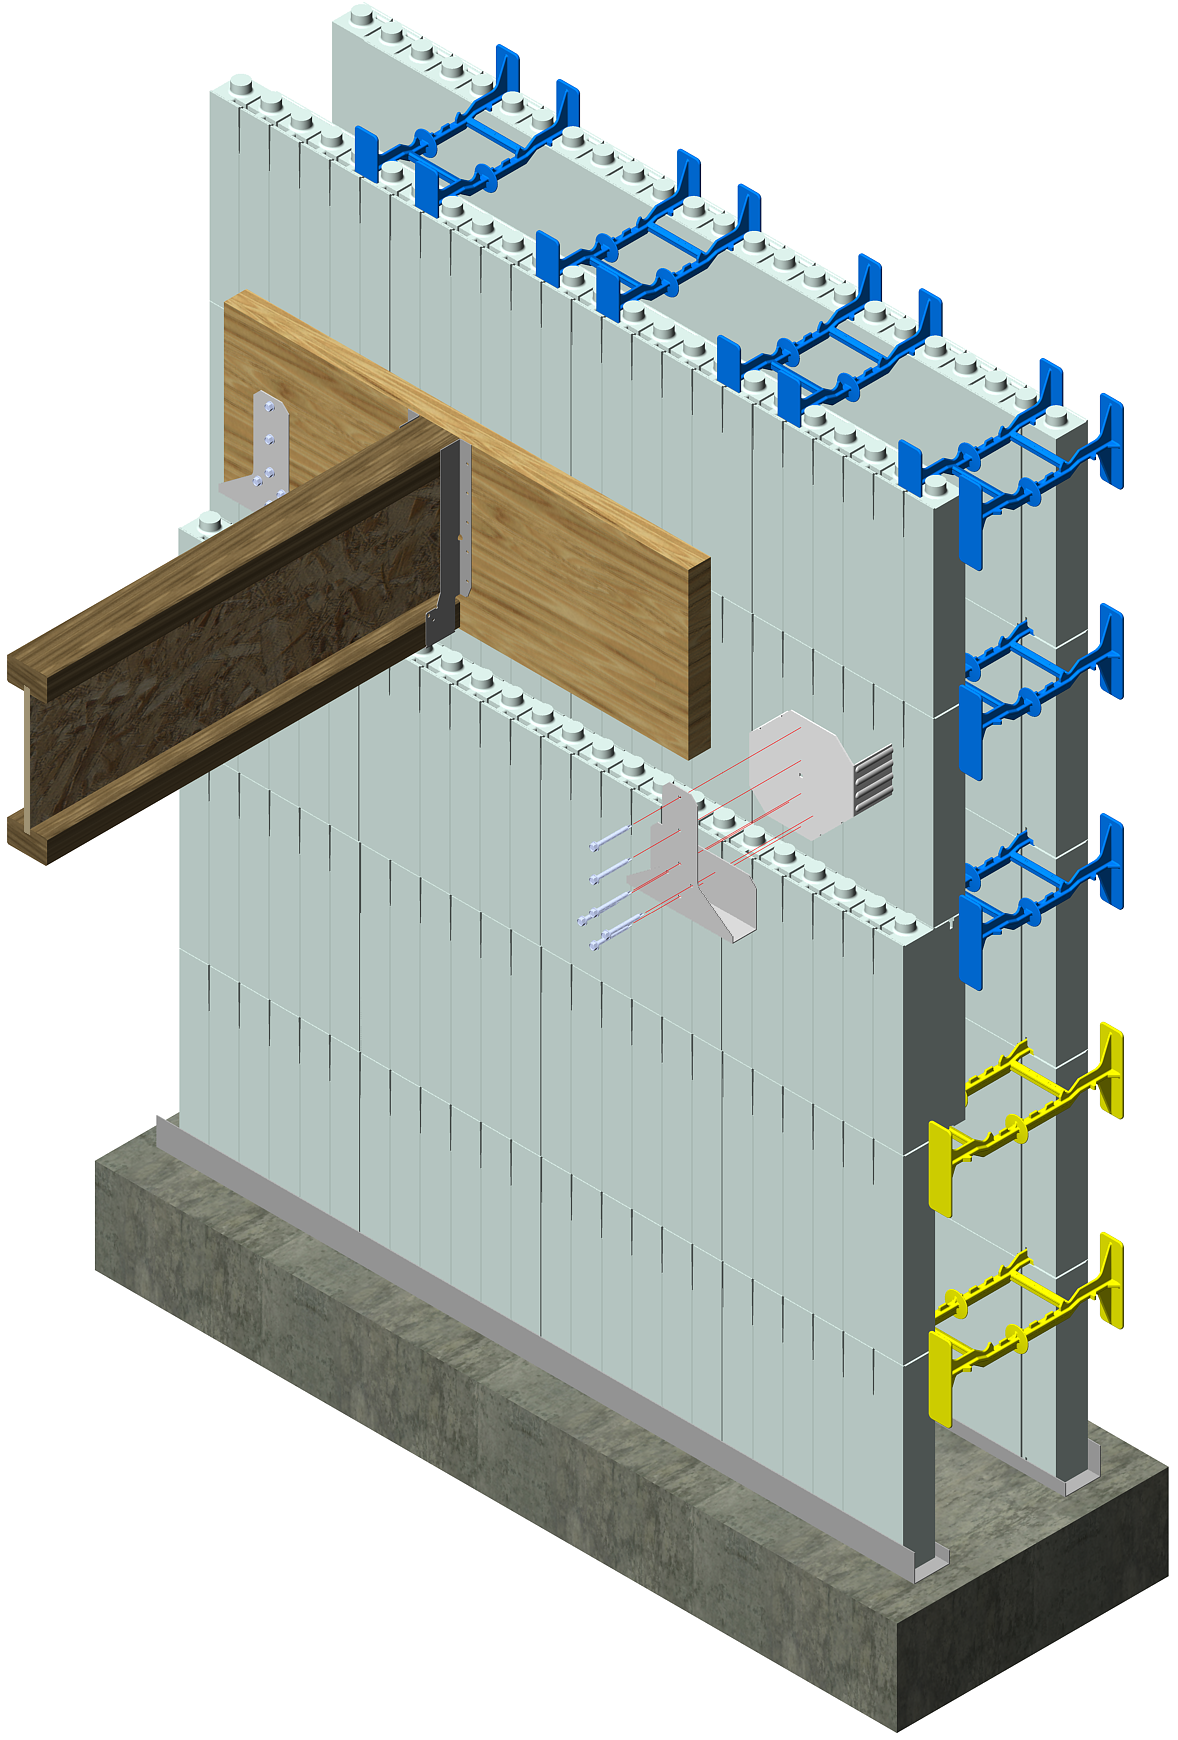 Icf floor ledger attachment simpson icfvl attach ledger for Icf concrete